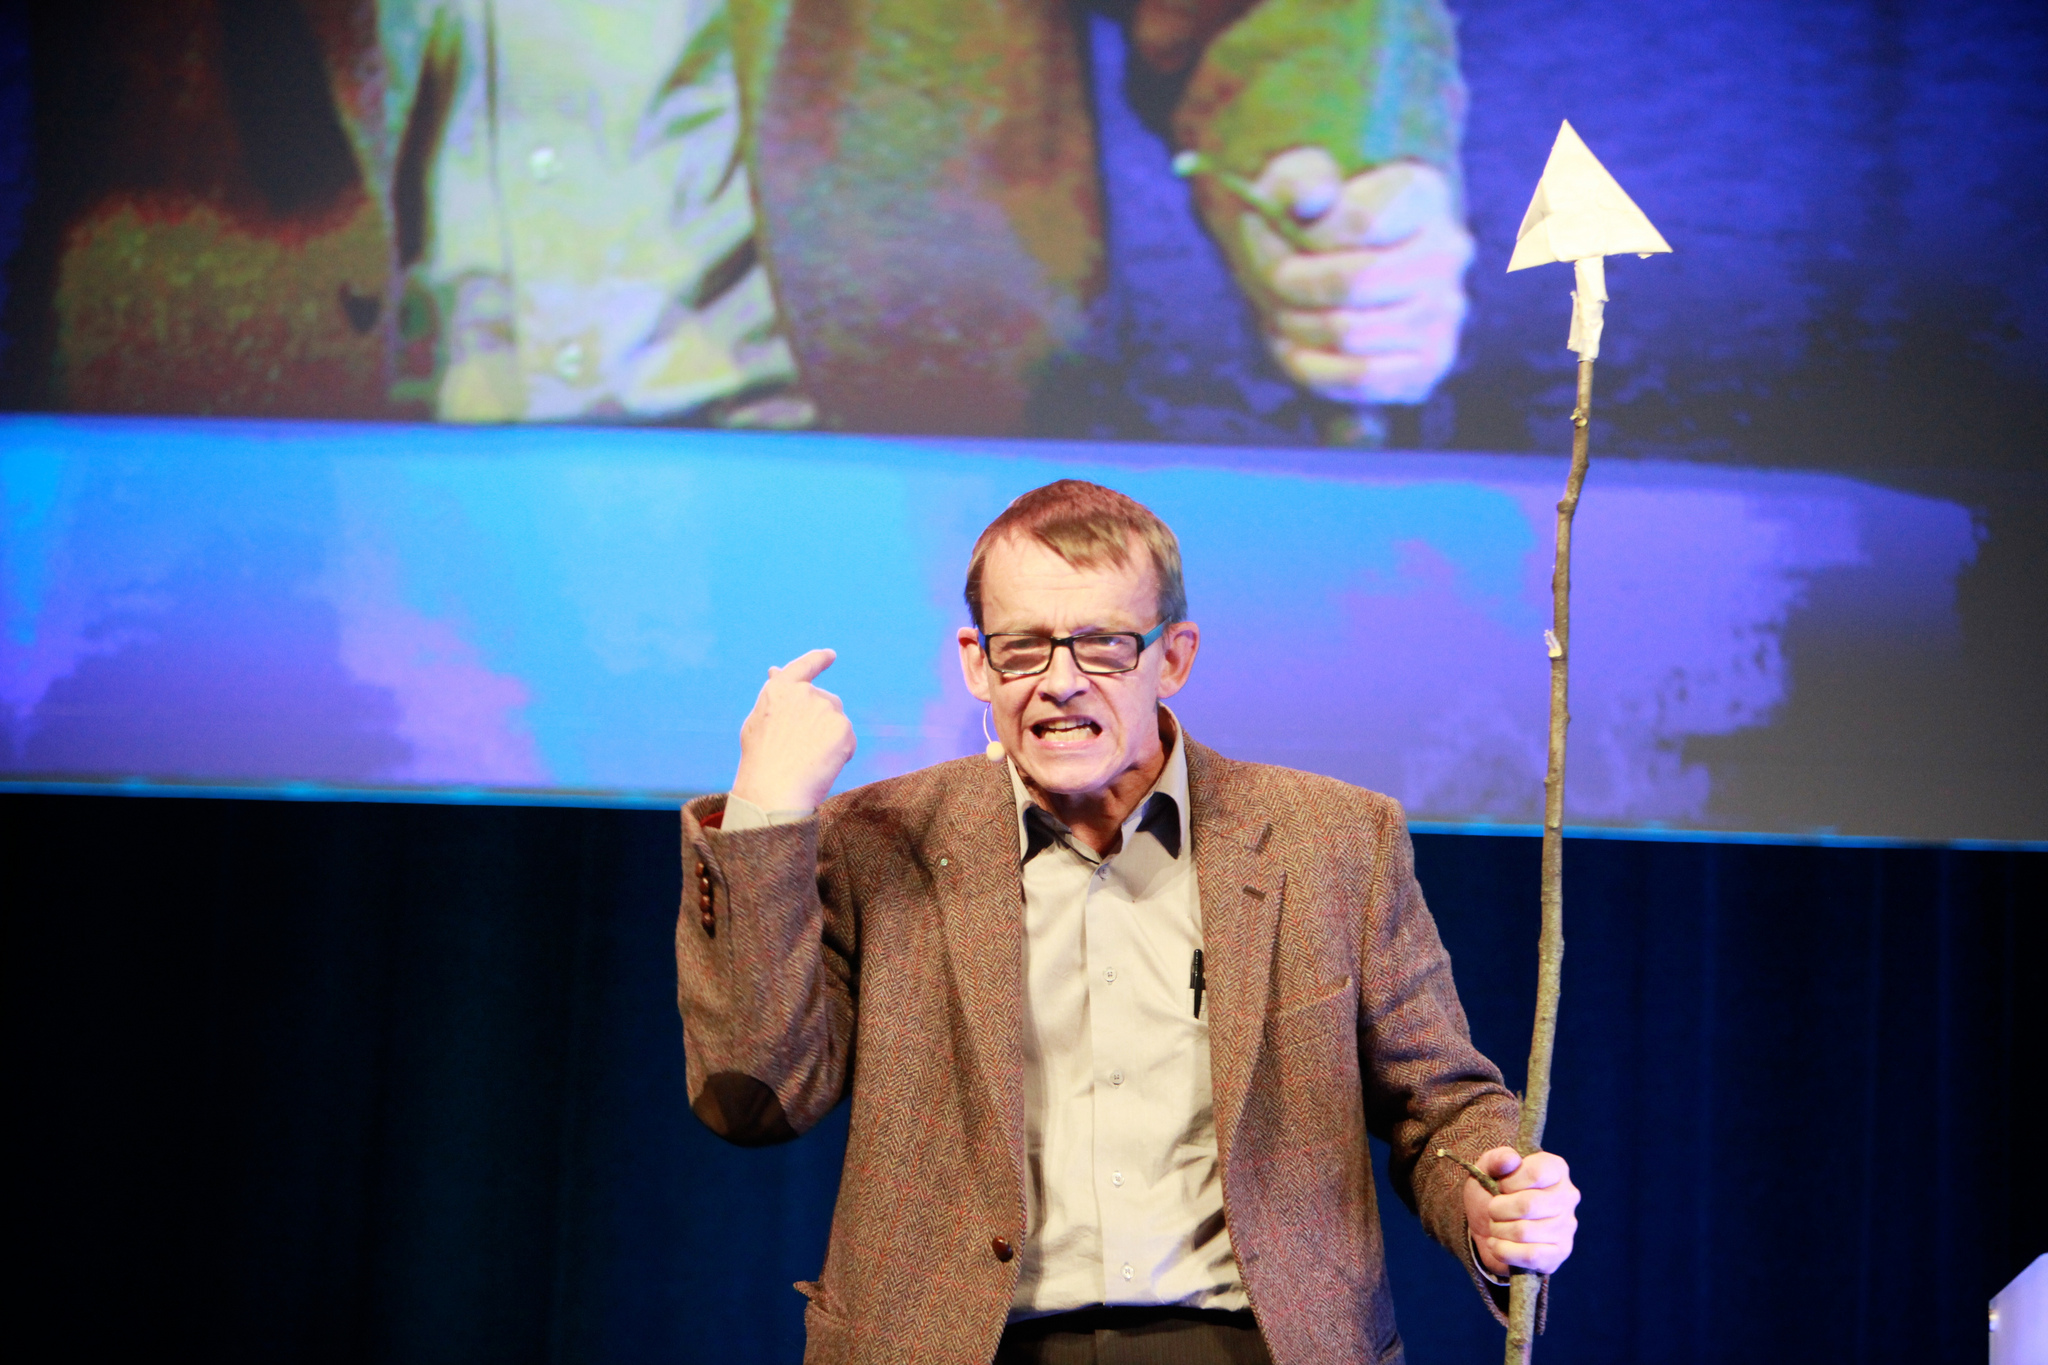 Hans Rosling during a talk in 2012. Credit: zero_org/Flickr, CC BY 2.0